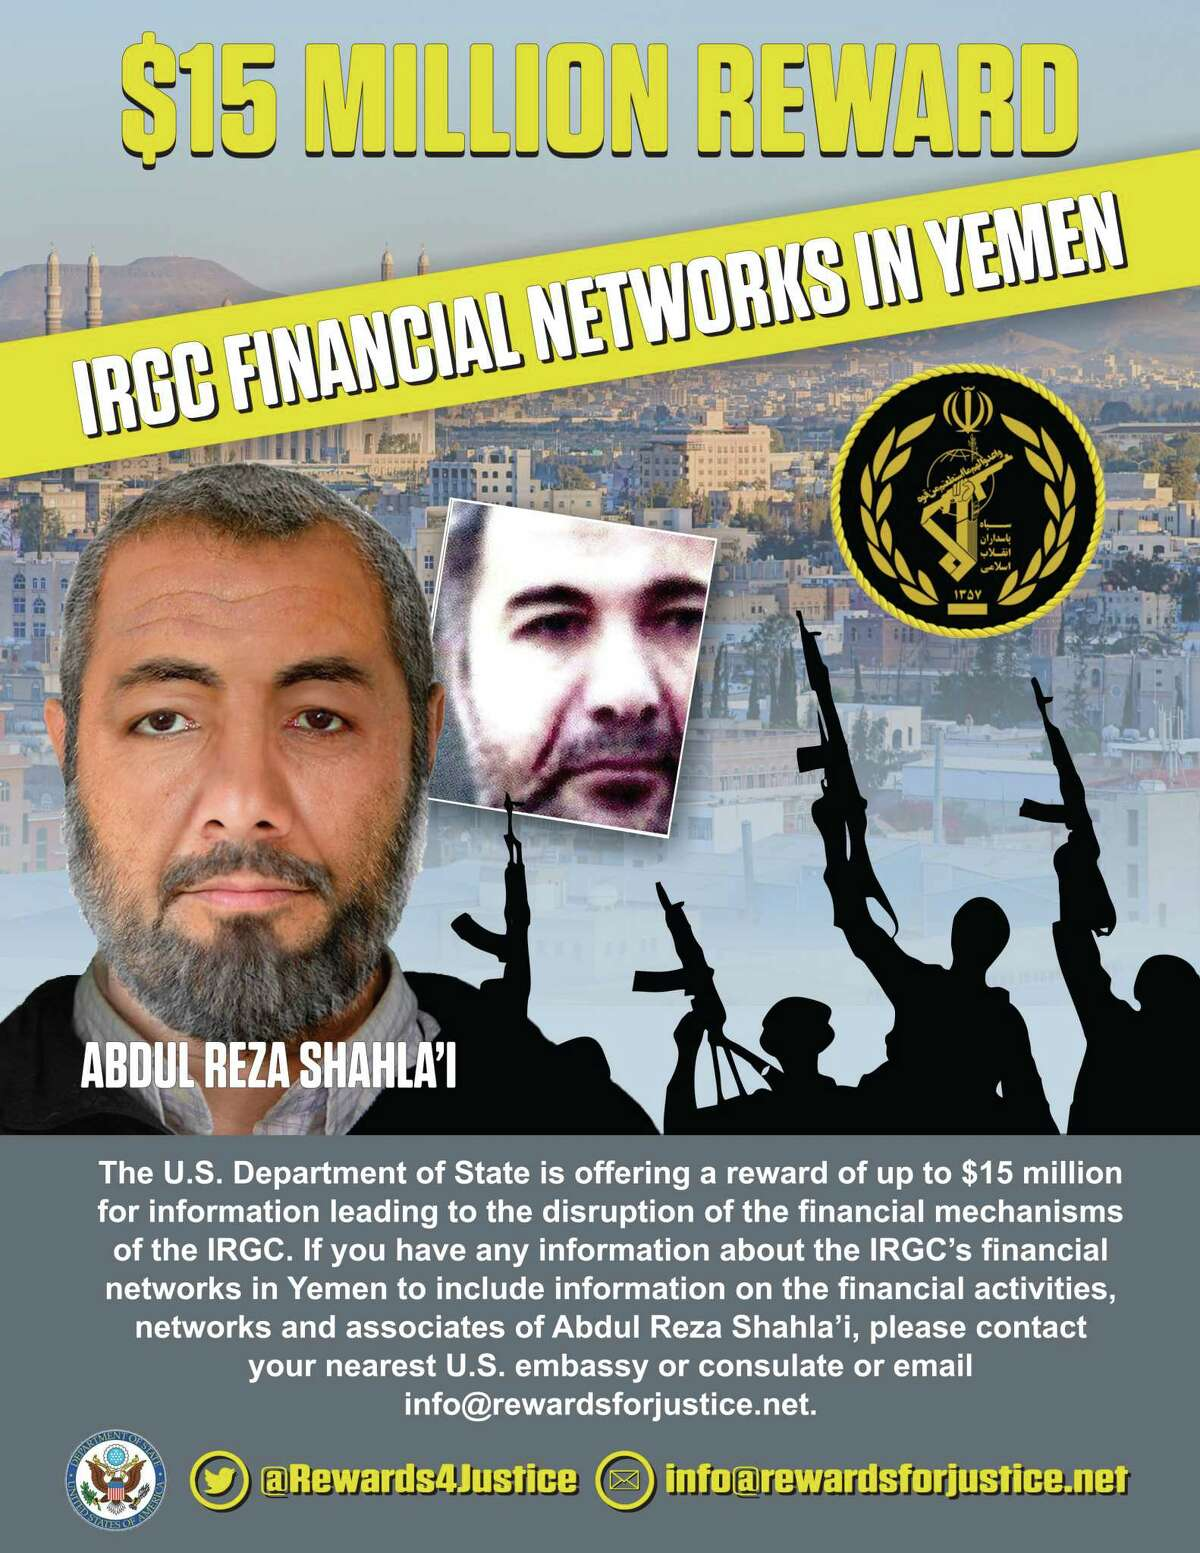 A State Department wanted poster for Abdul Reza Shahlai.